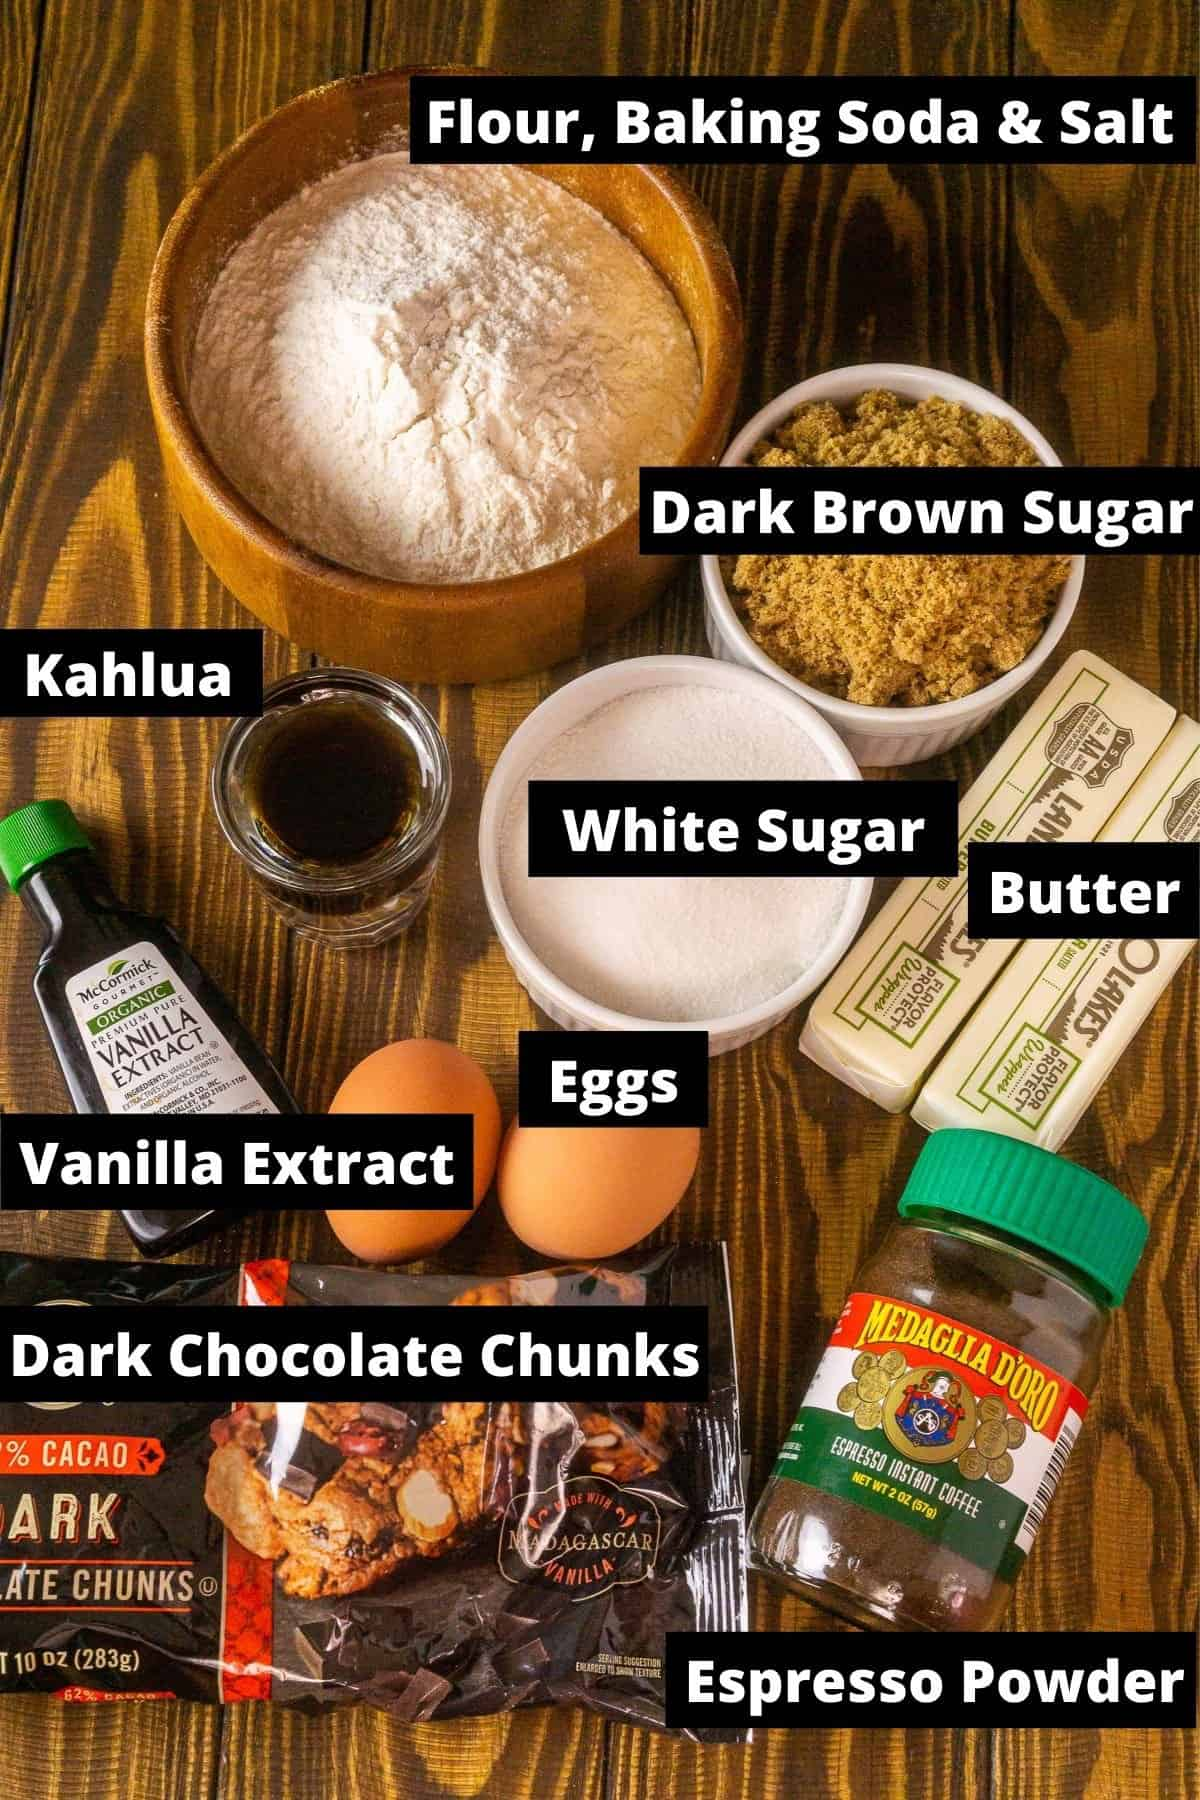 The ingredients for the Kahlua cookies on a wooden background with black and white labels.